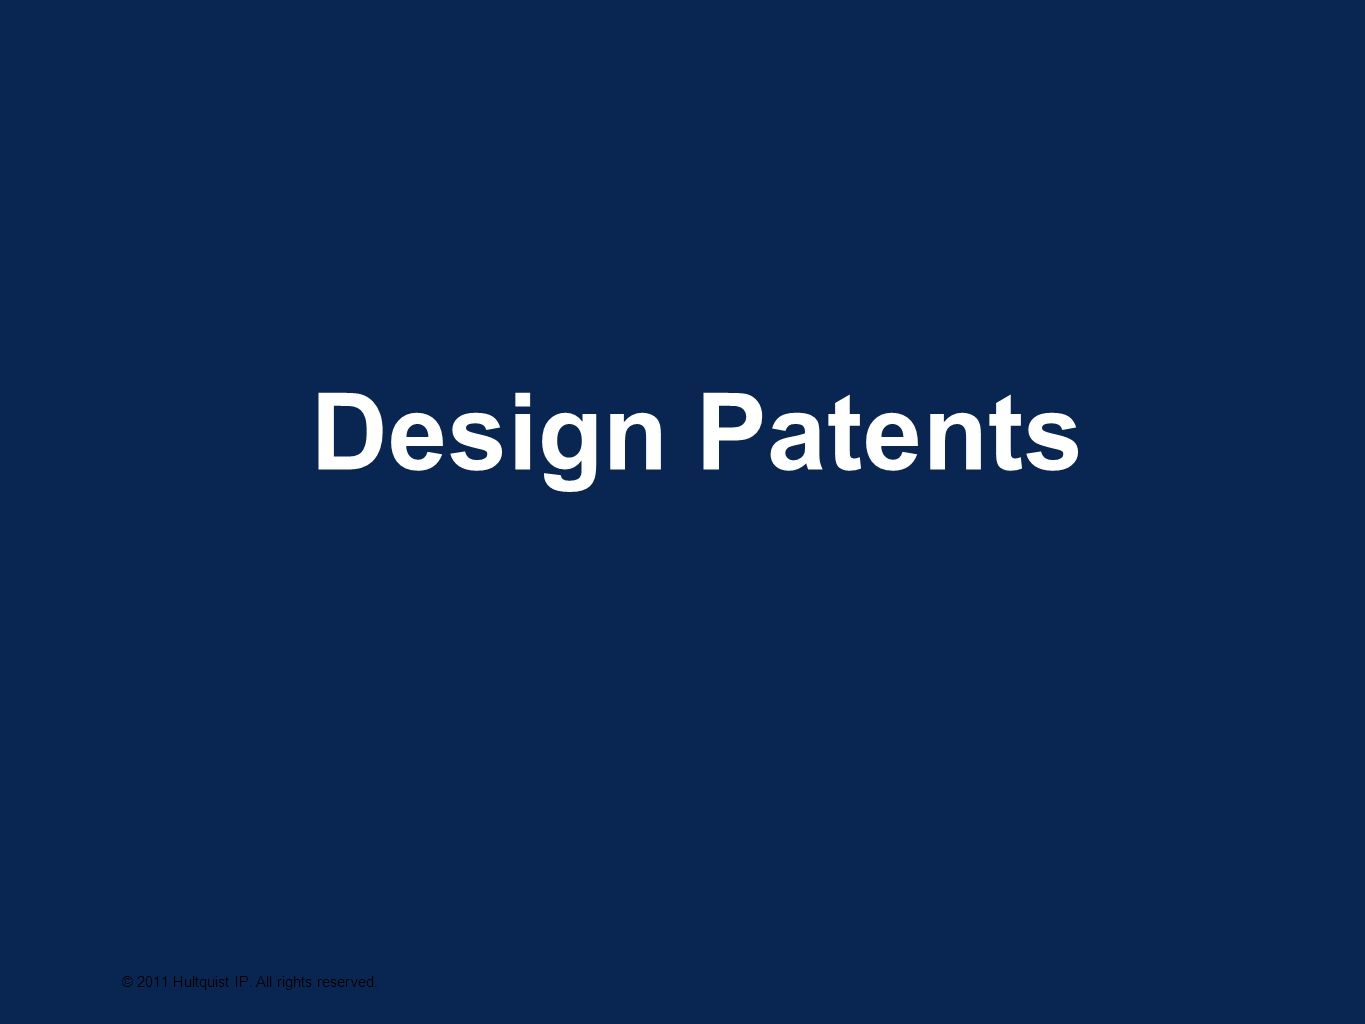 DESIGN PATENT BASICS Protects the ornamental appearance of a functional item Must be novel and non-obvious Confers temporary right (e.g., 14 years) to exclude others © 2011 Hultquist IP.